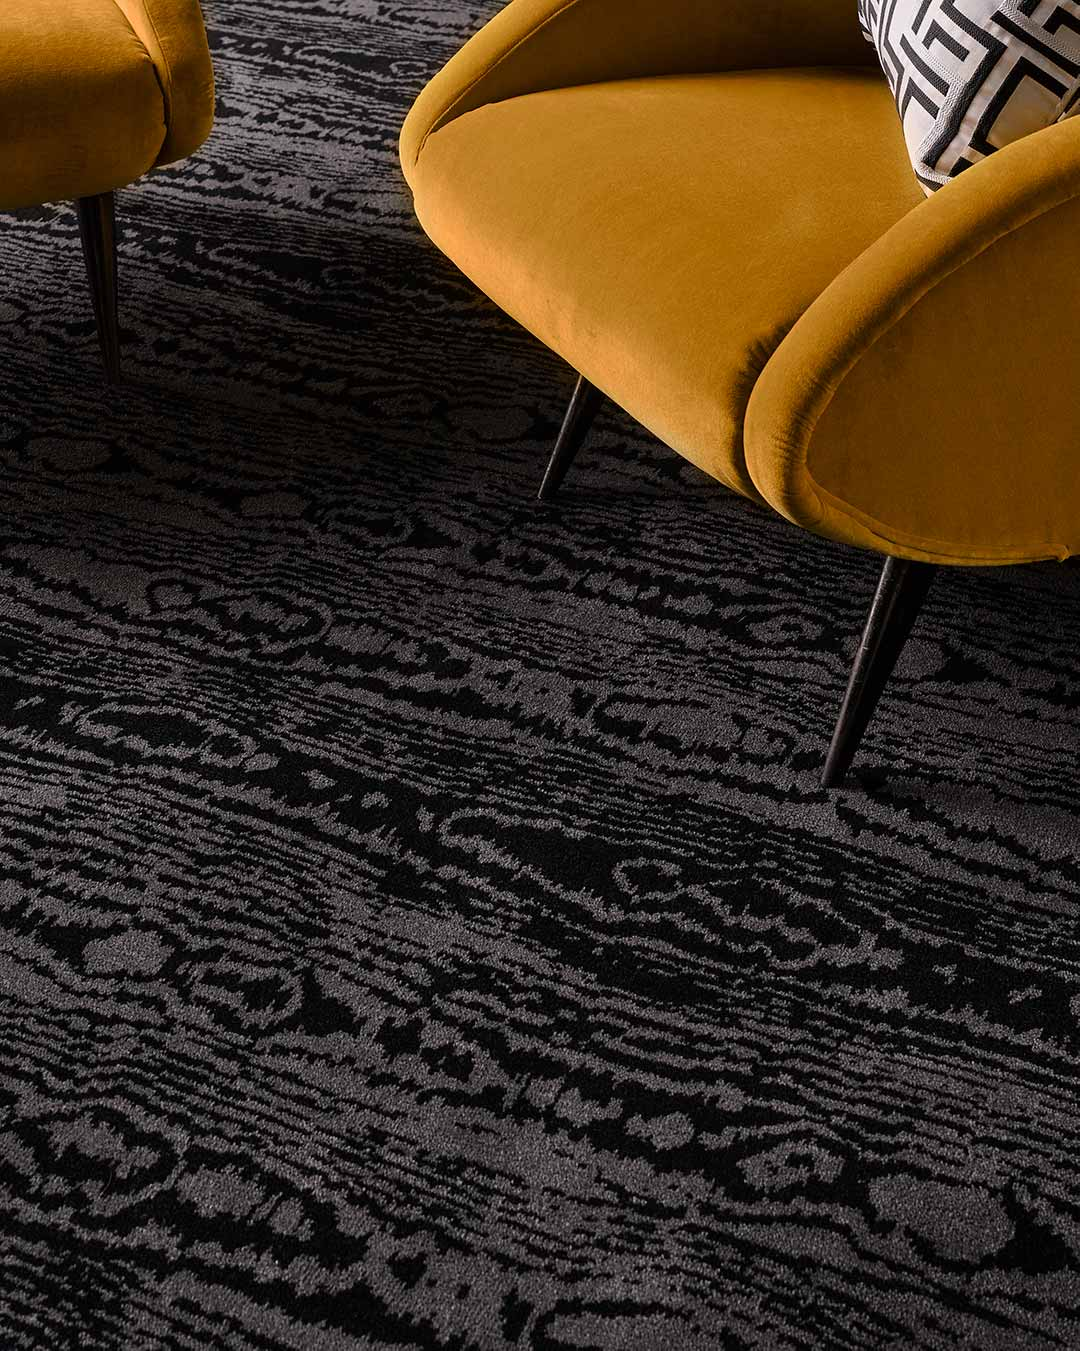 Close up view of Moire charcoal Axminster carpet by Greg Natale